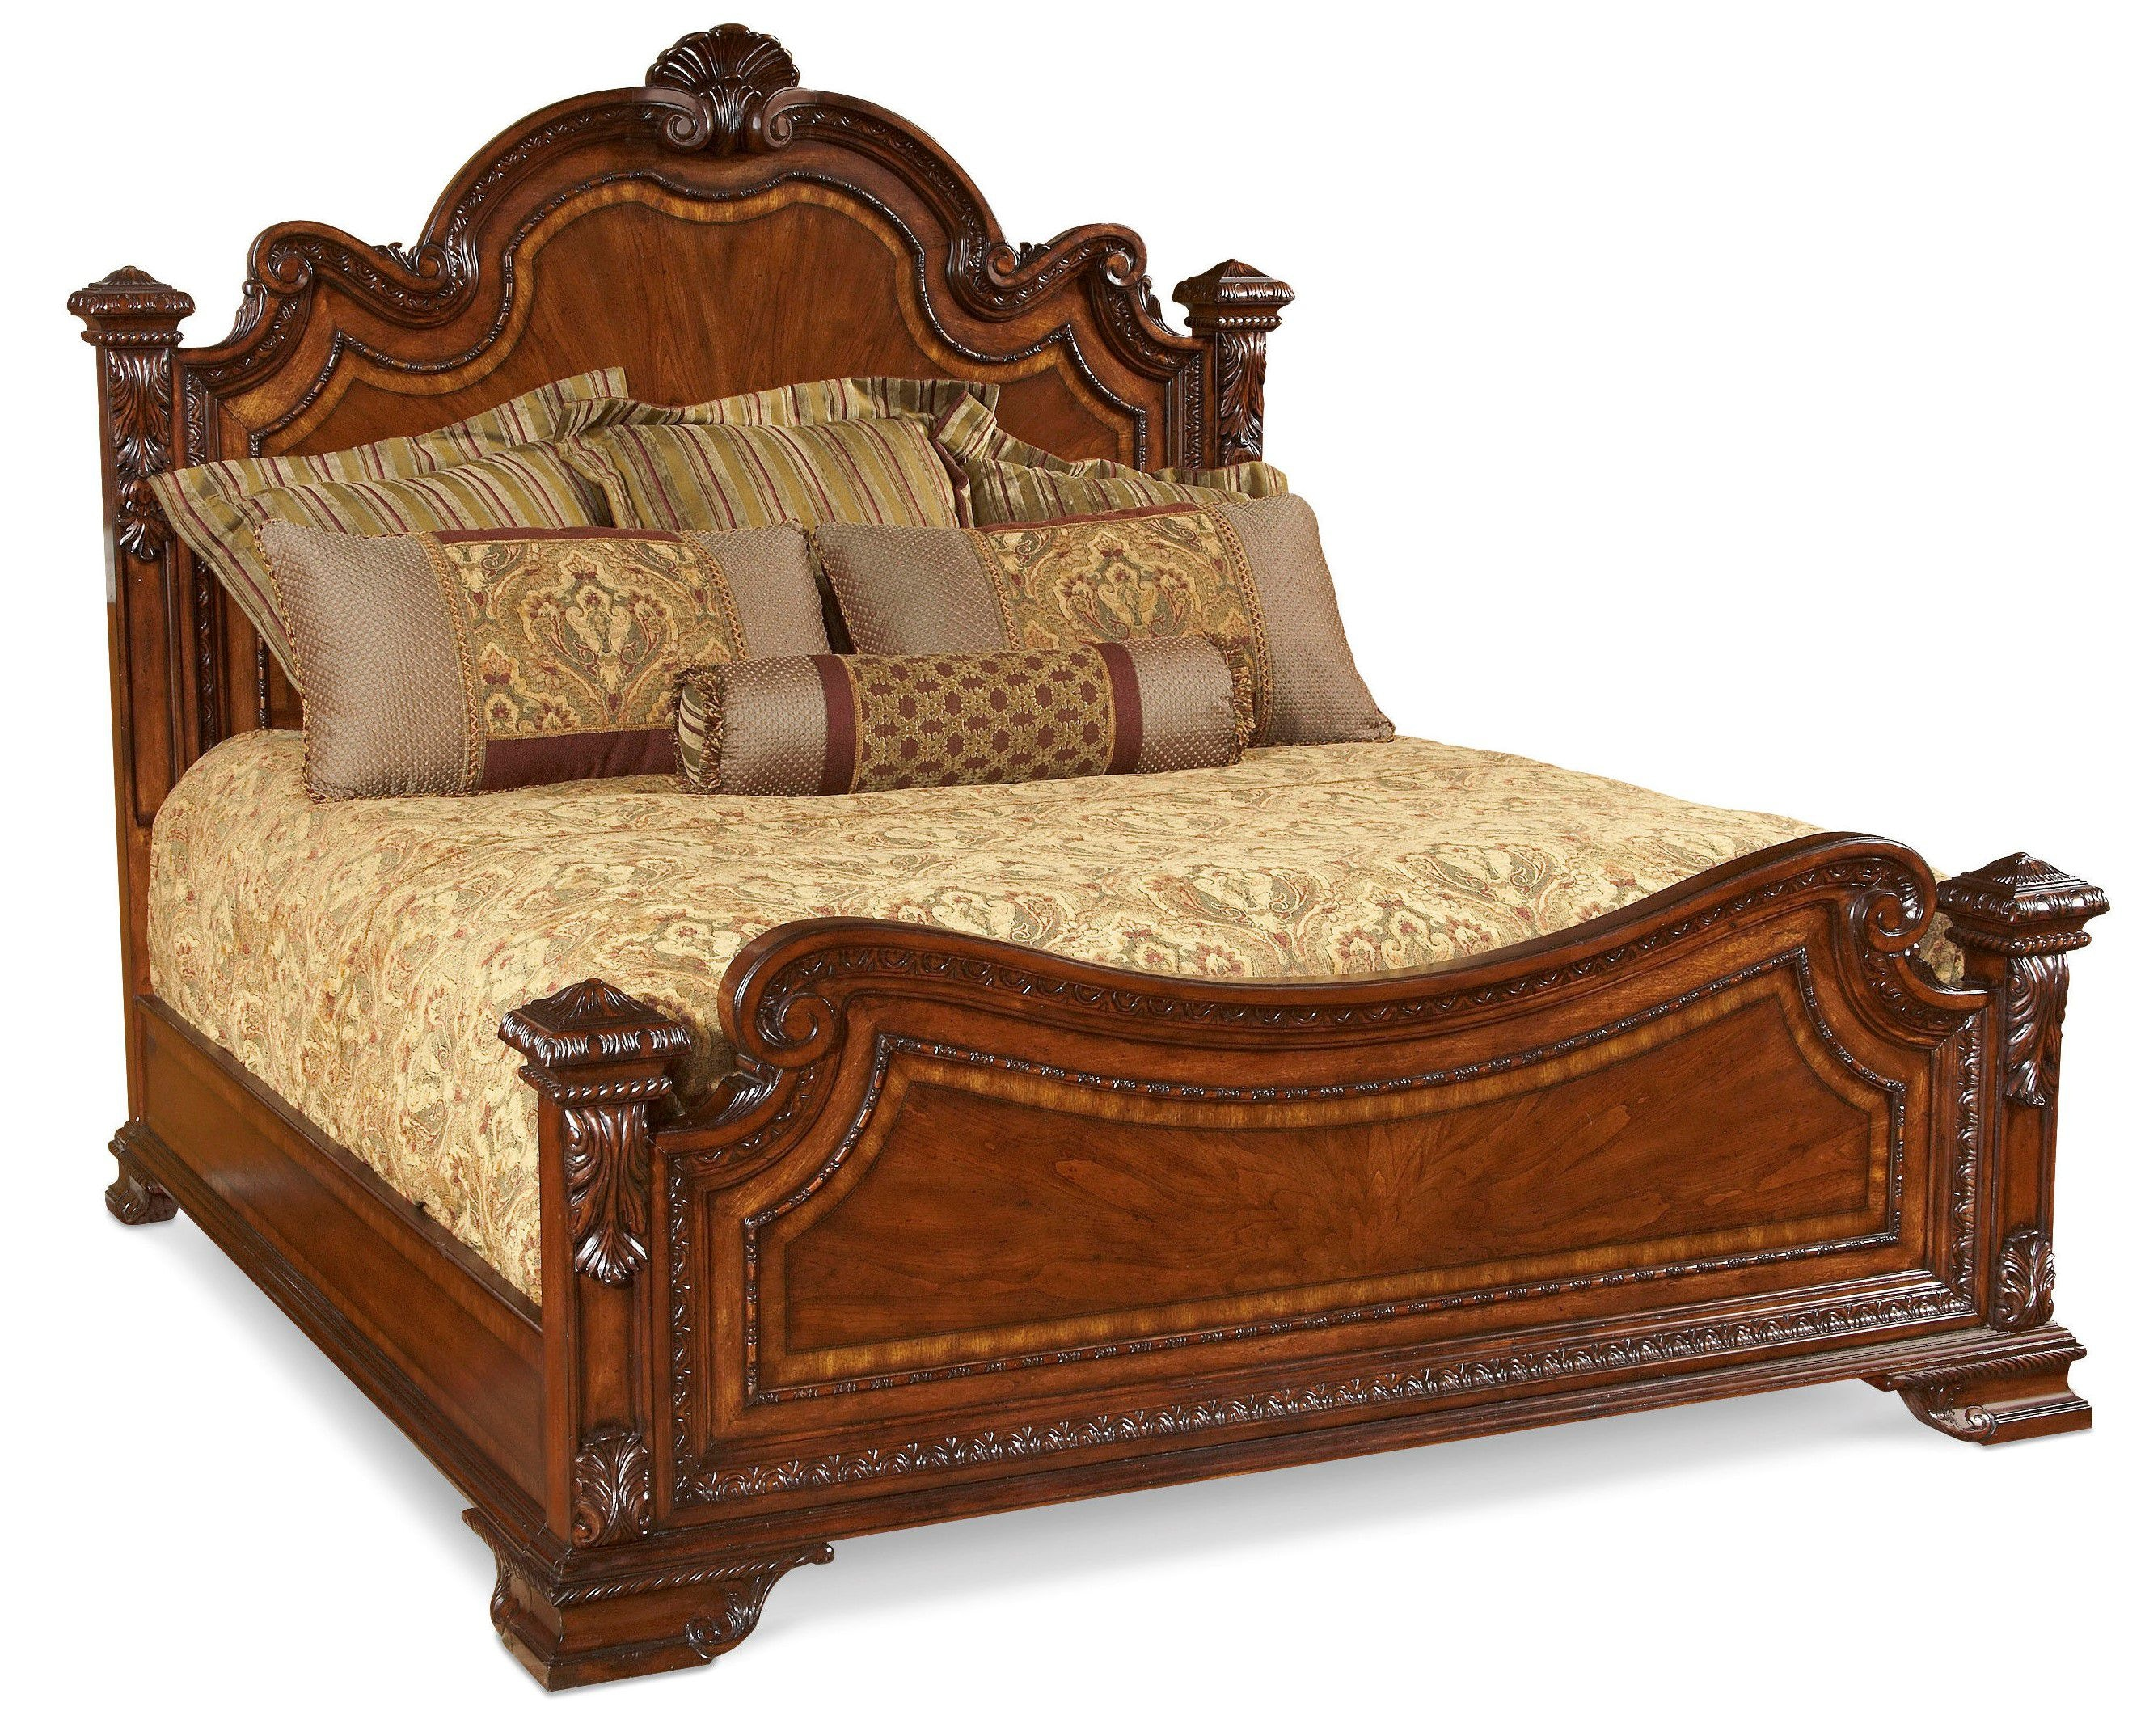 Superieur ART Furniture Bedroom 6/0 California King Estate Bed 143157 2606   Design  Source Furniture   Tempe, AZ